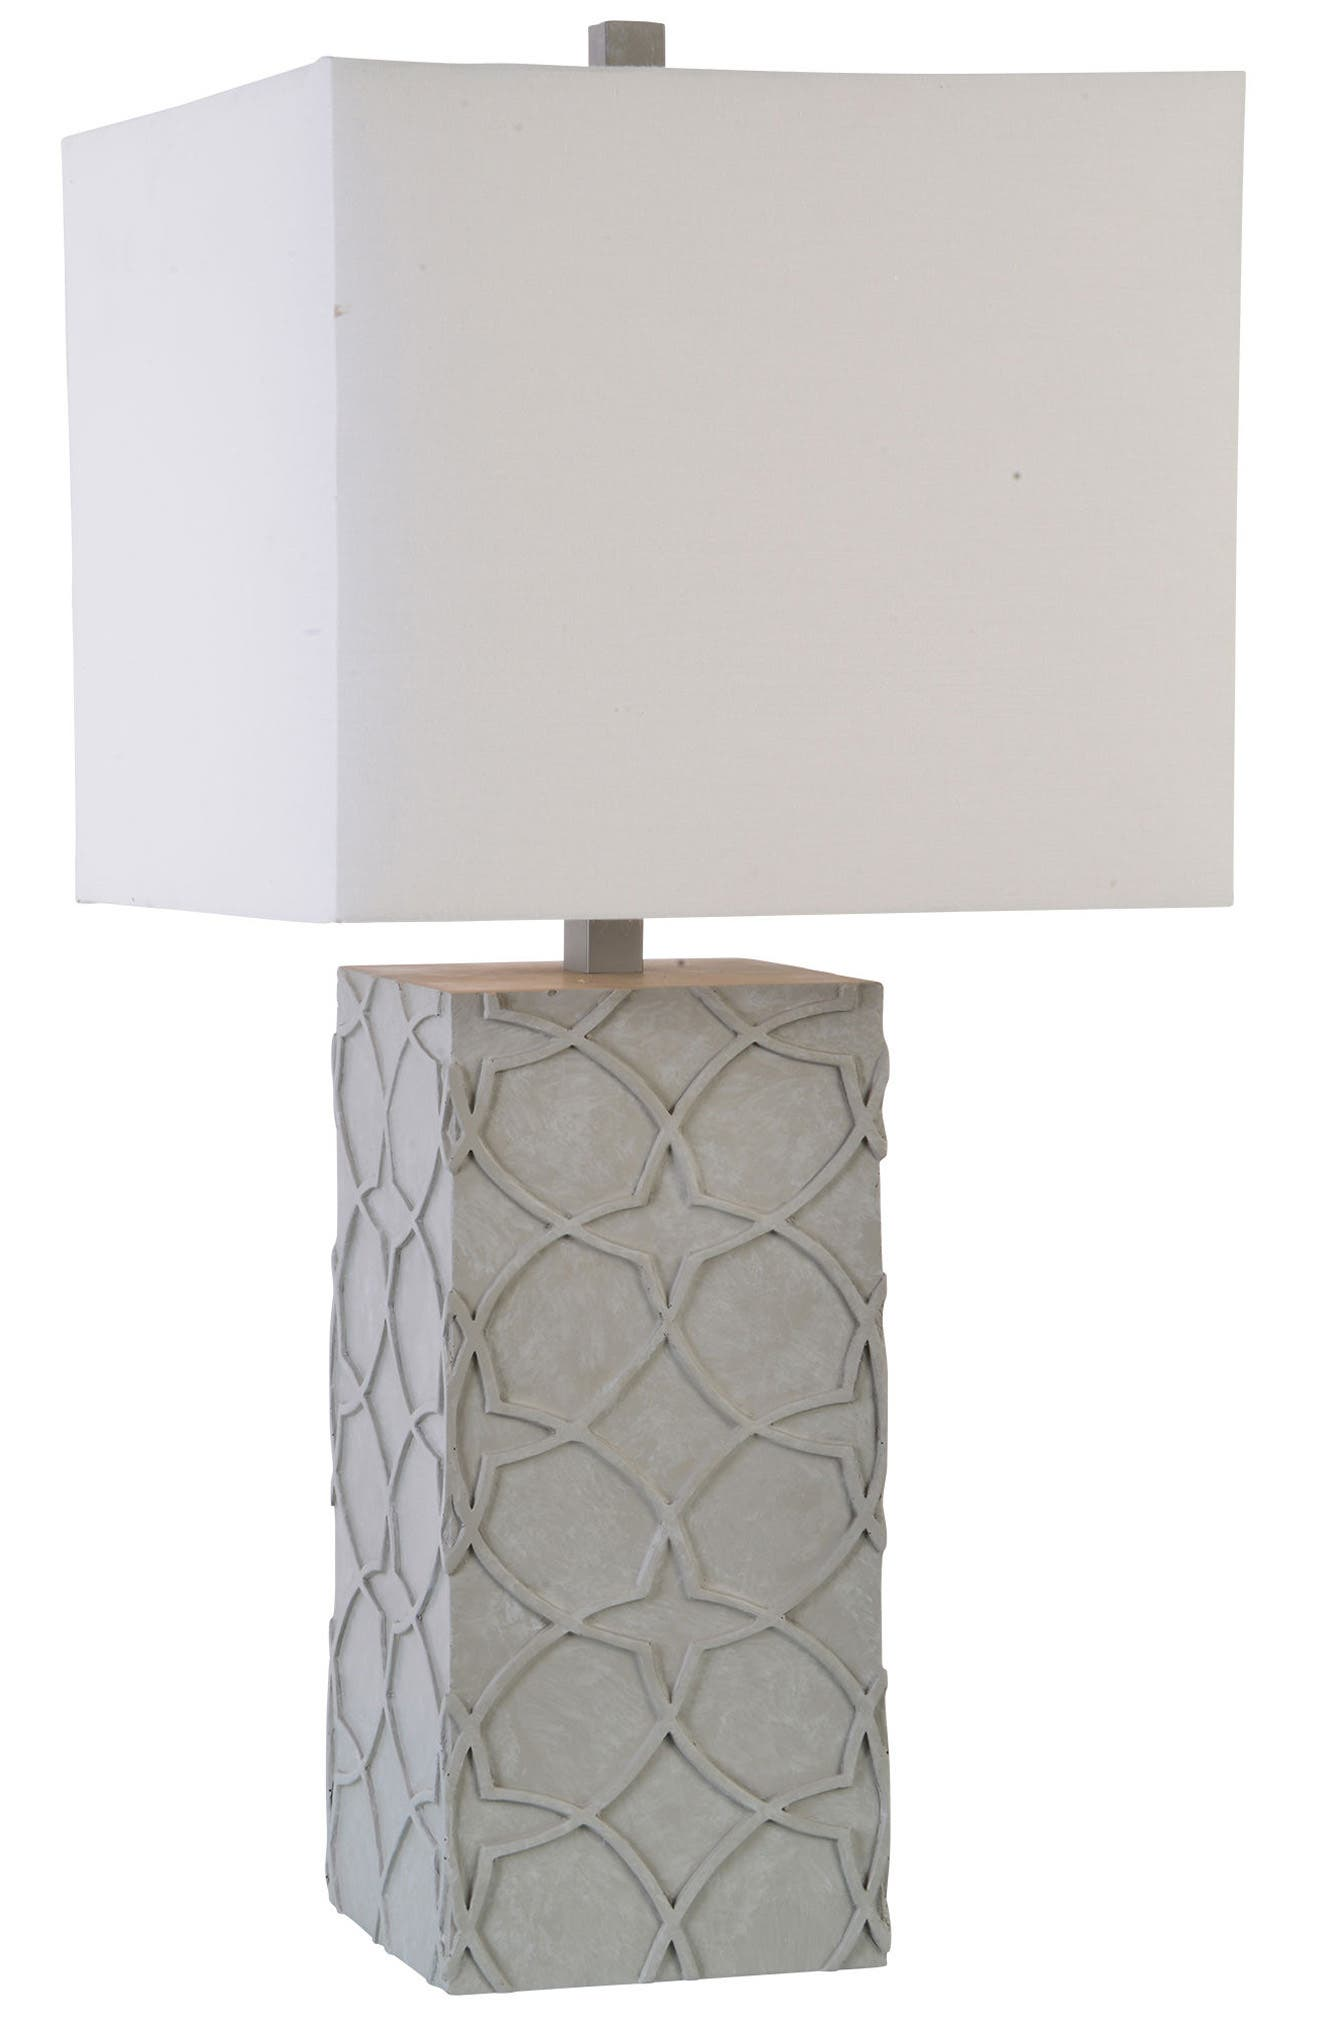 Barkly Table Lamp,                             Alternate thumbnail 3, color,                             Concrete